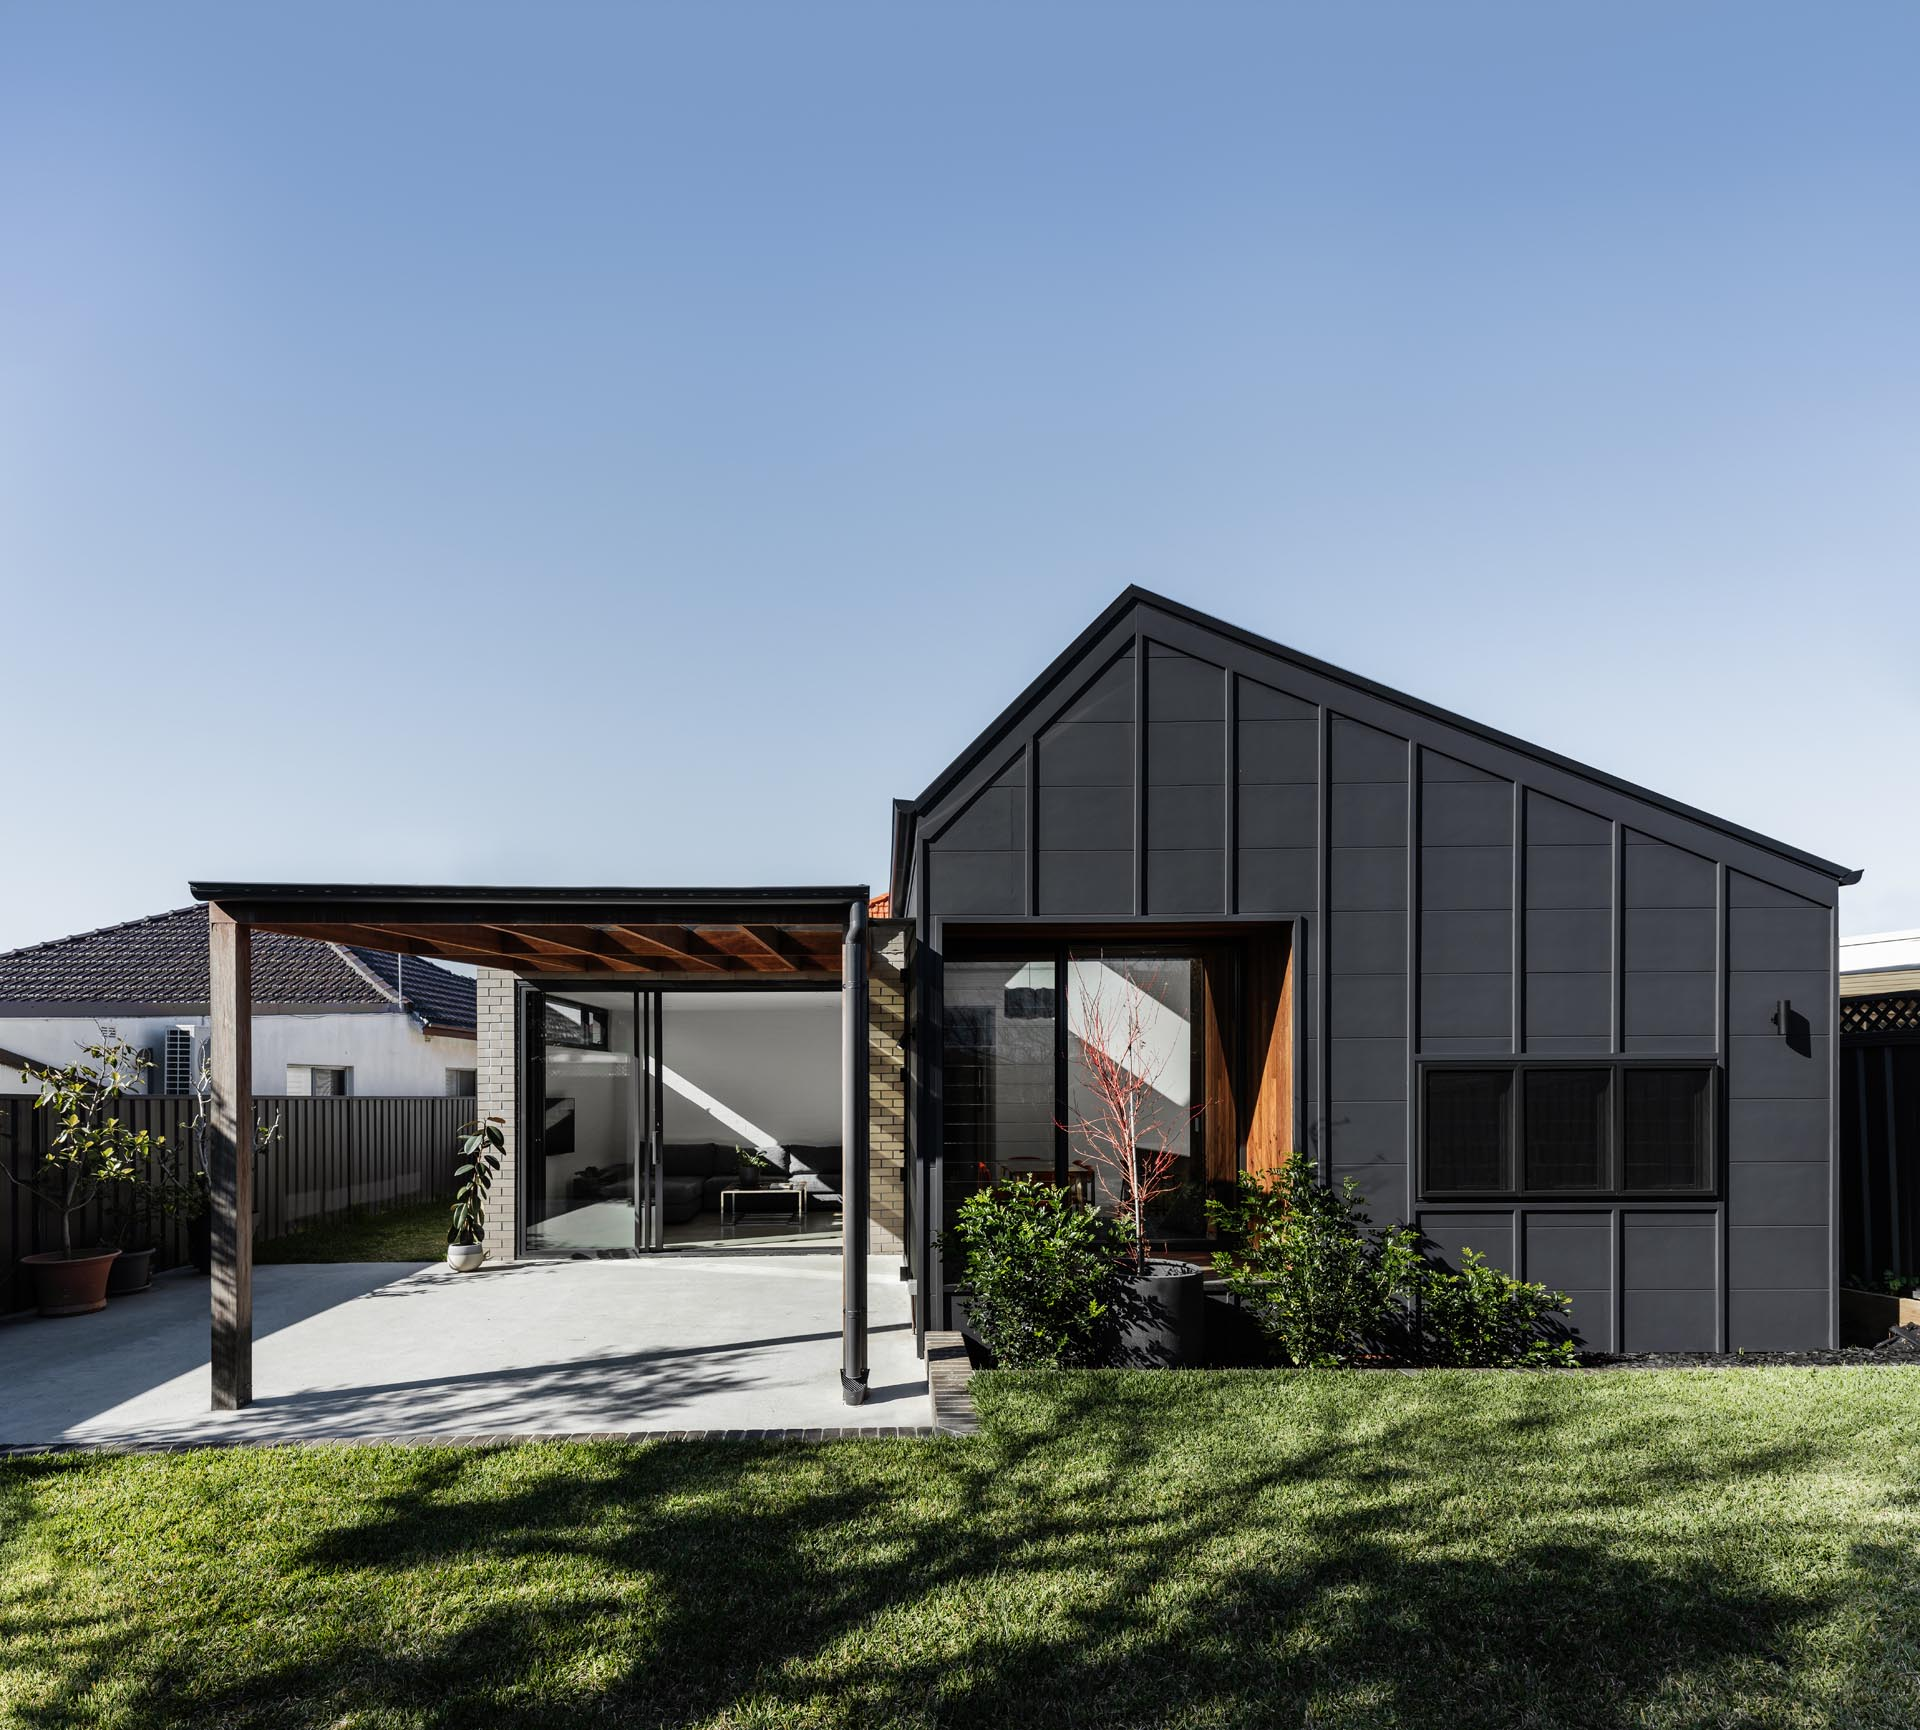 A simplified rear addition with a black and brick exterior includes a kitchen, dining, and living room with an improved connection to the outdoors via a covered patio.